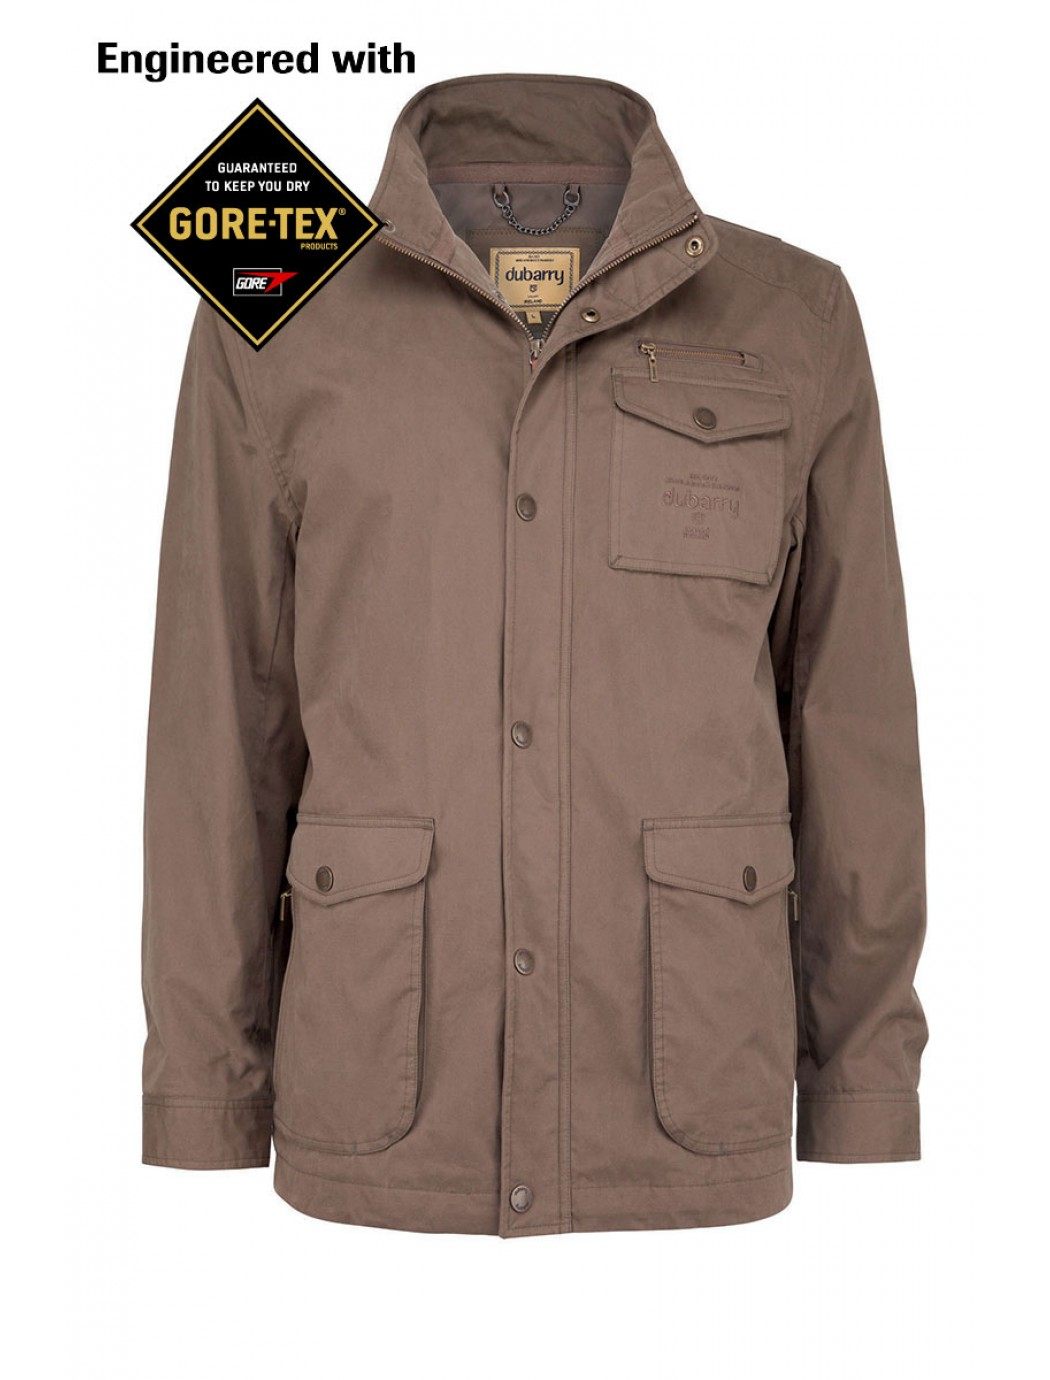 bantry-mens-jackets-loden